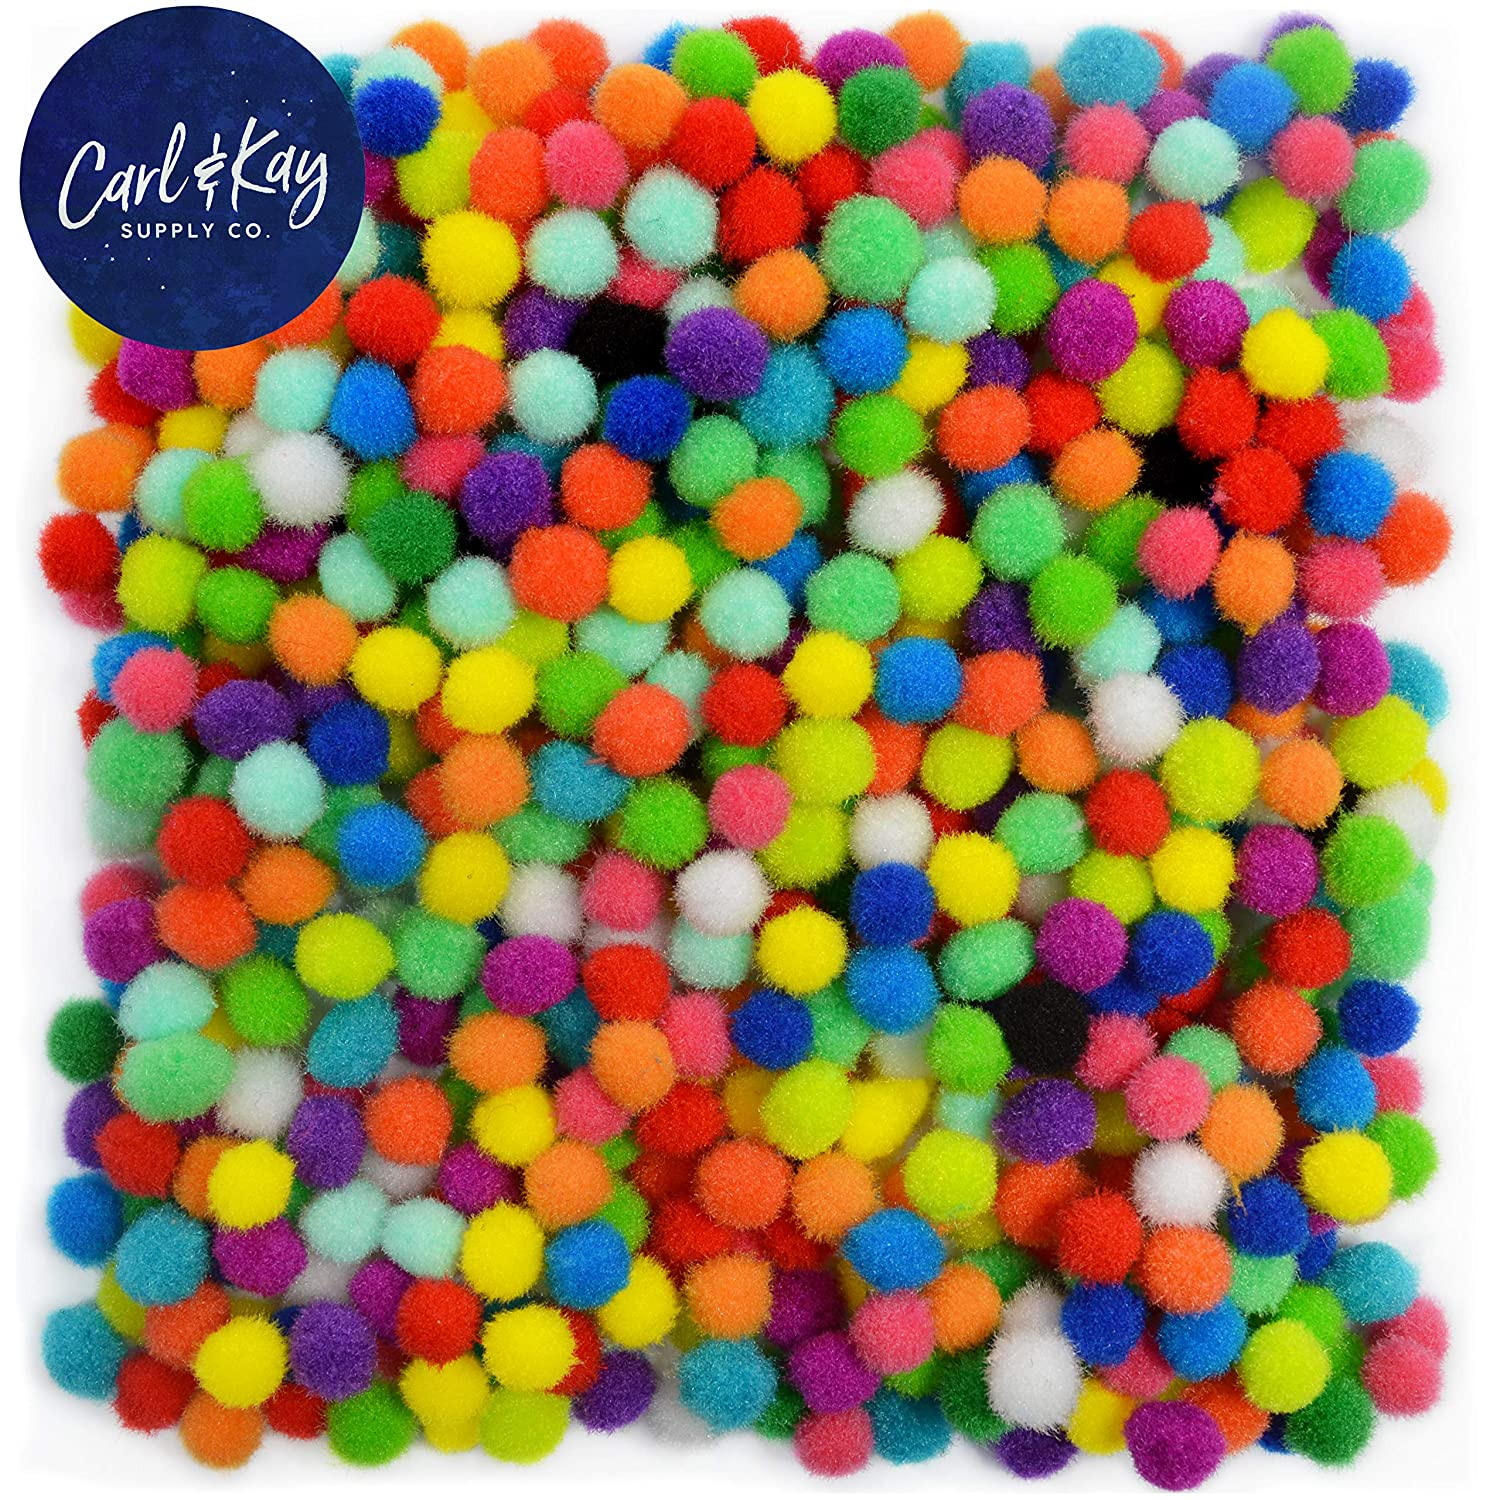 Carl /& Kay Pompoms for Crafts Craft Pom Poms for Crafts Craft Pom Pom Balls 1800 Pcs Pom Pom for Crafts 1 cm Pom Poms in Bright /& Bold Colors